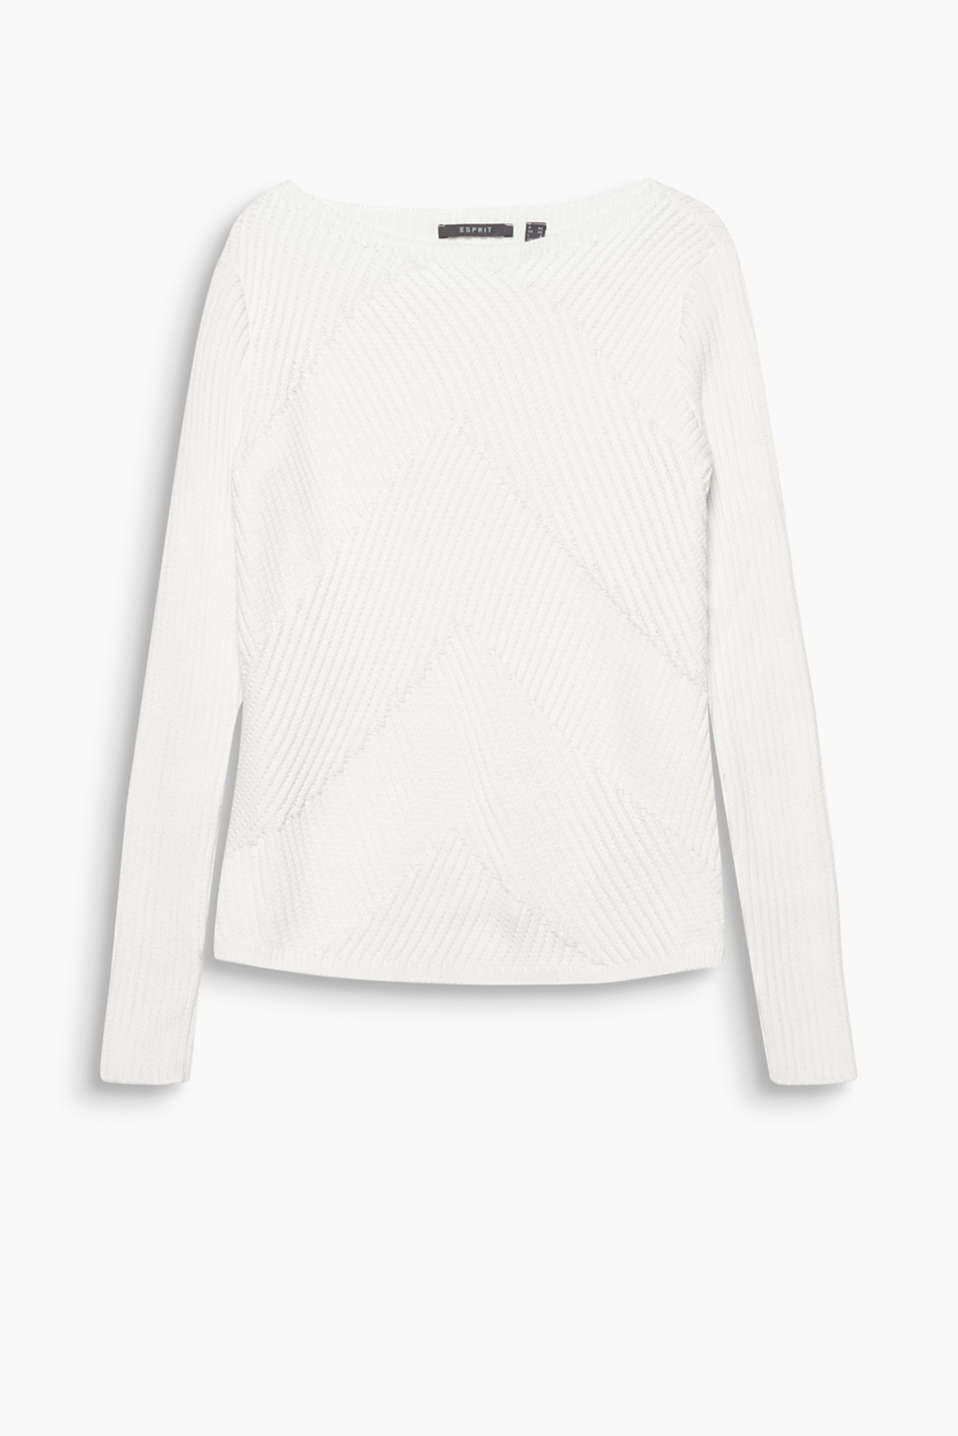 Gets to the point: modern, chunky knit jumper in blended cotton with a zigzag texture